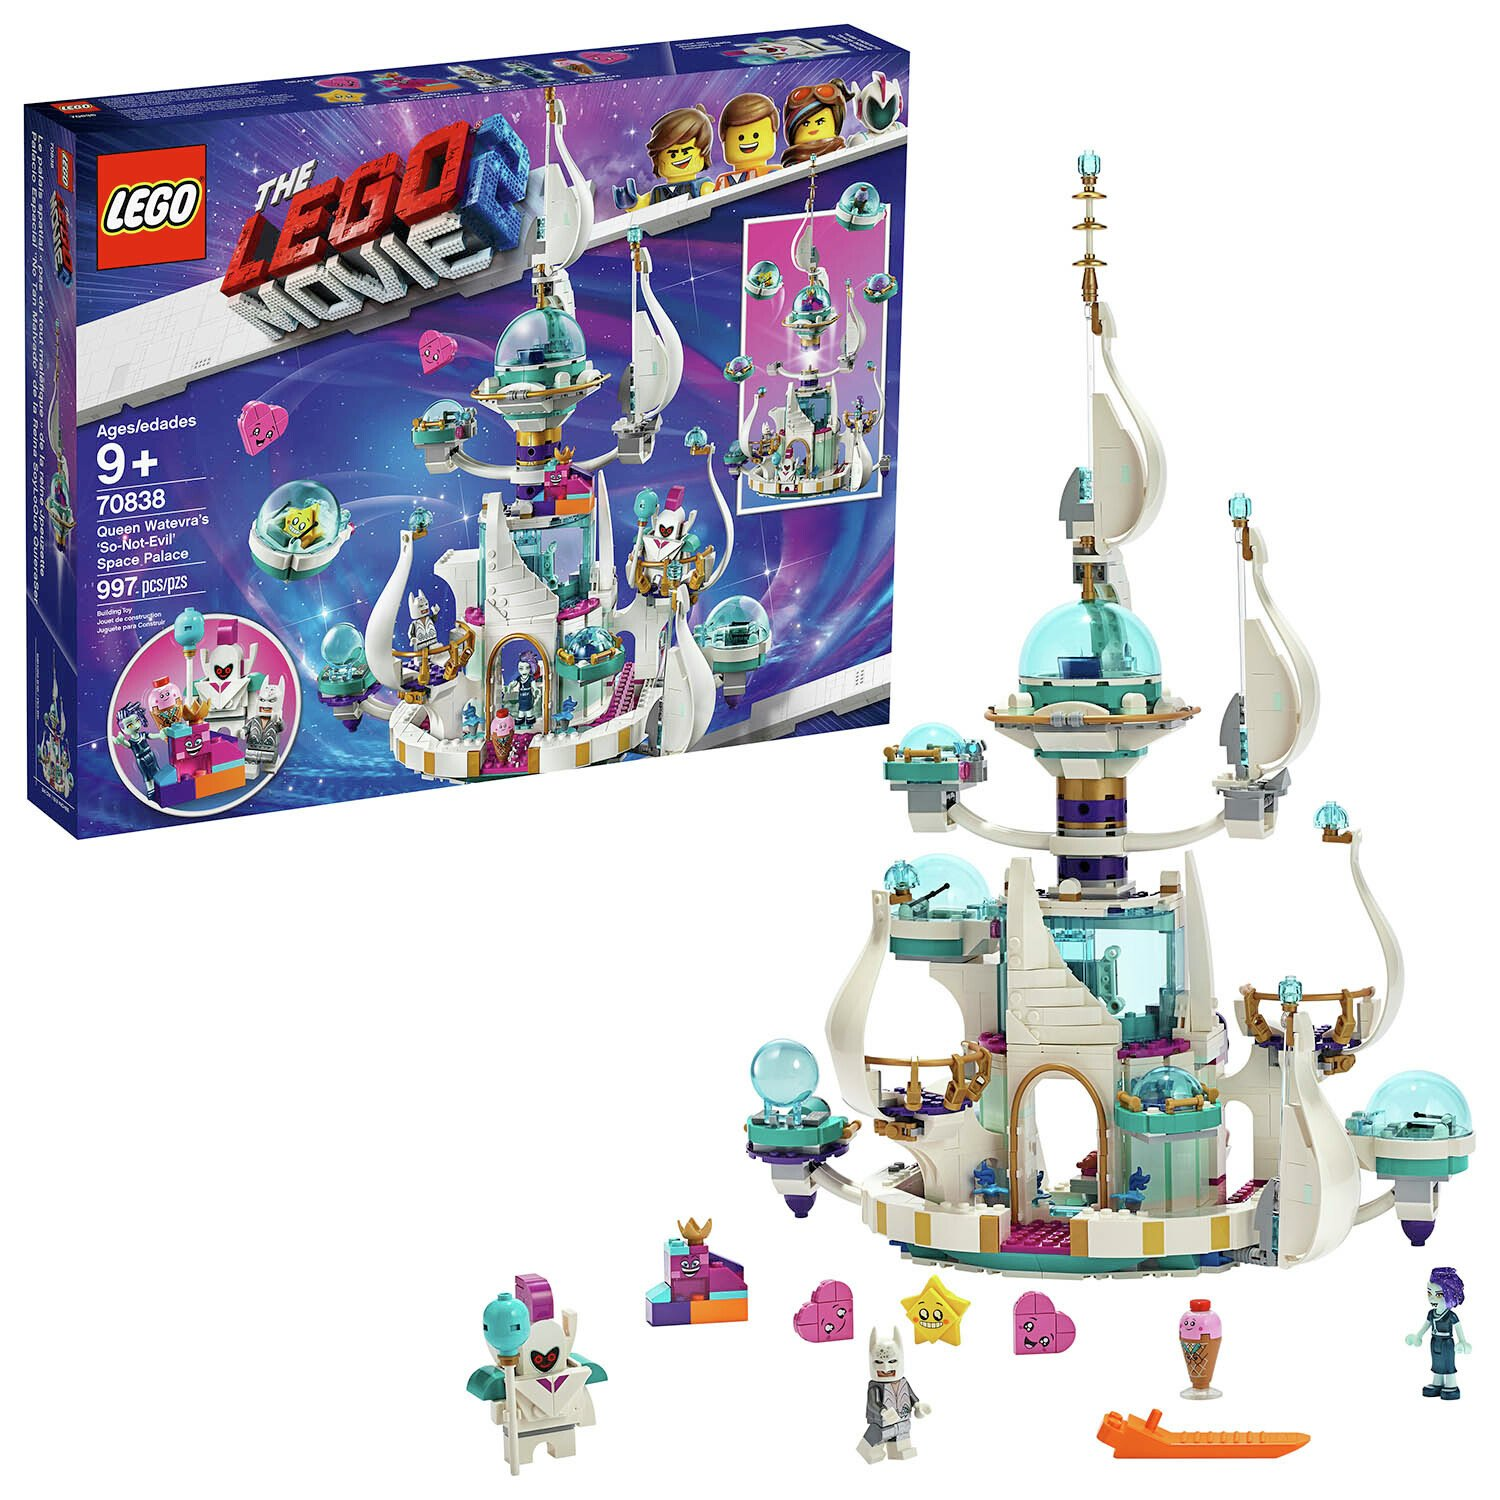 The LEGO Movie 2 Queen Watevra's Space Palace - 70838